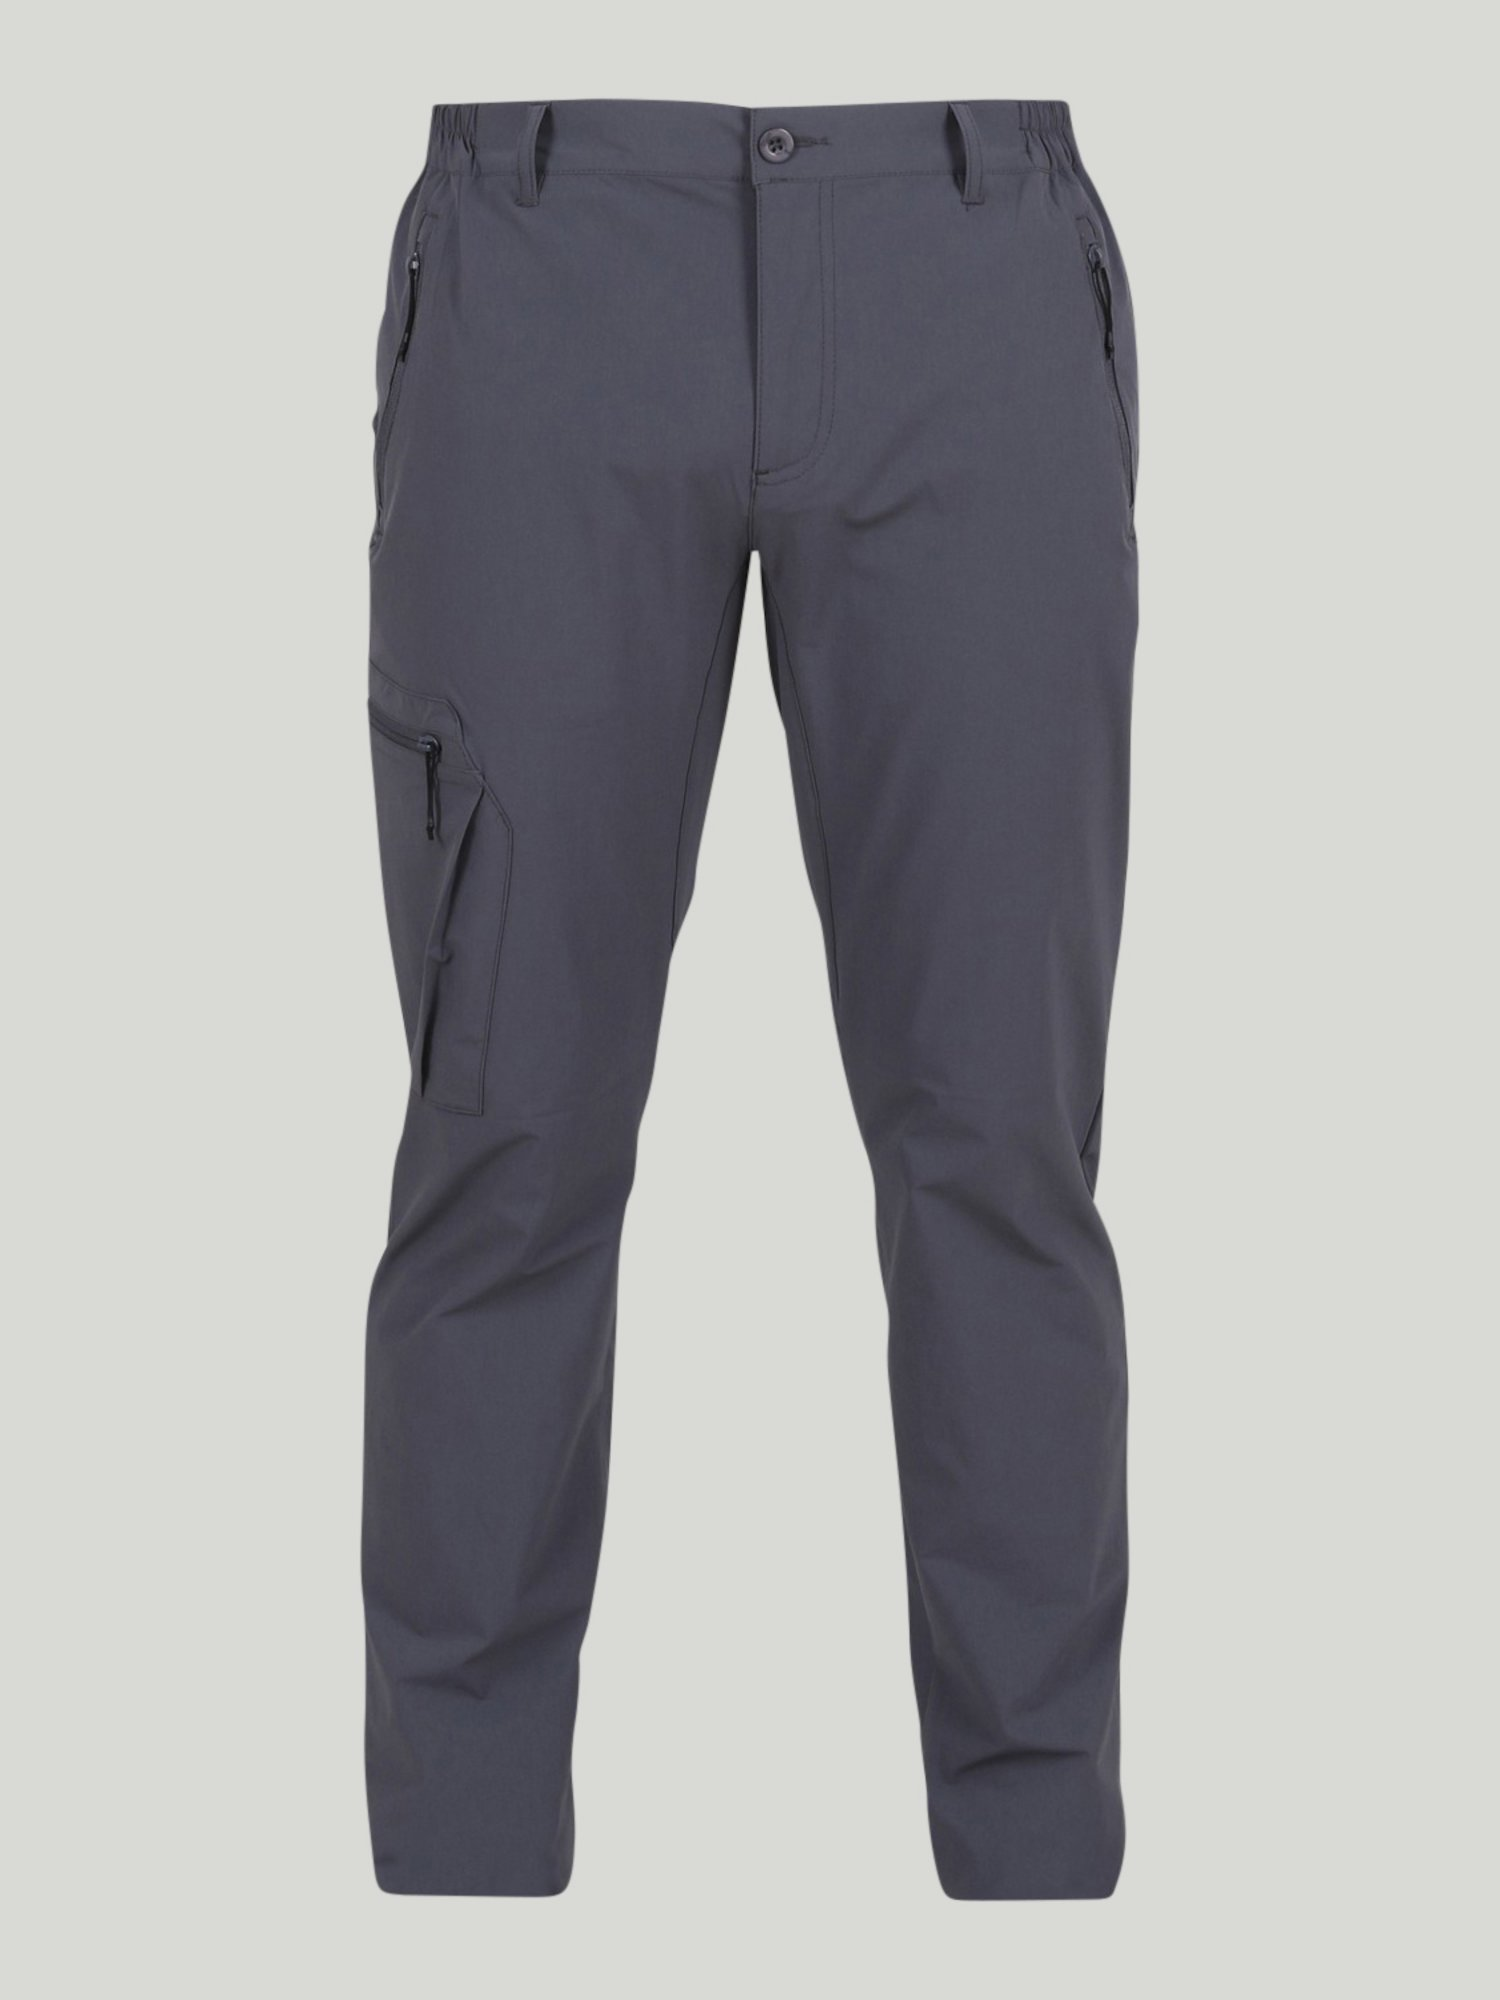 Trousers Cala Gonone - Antracita